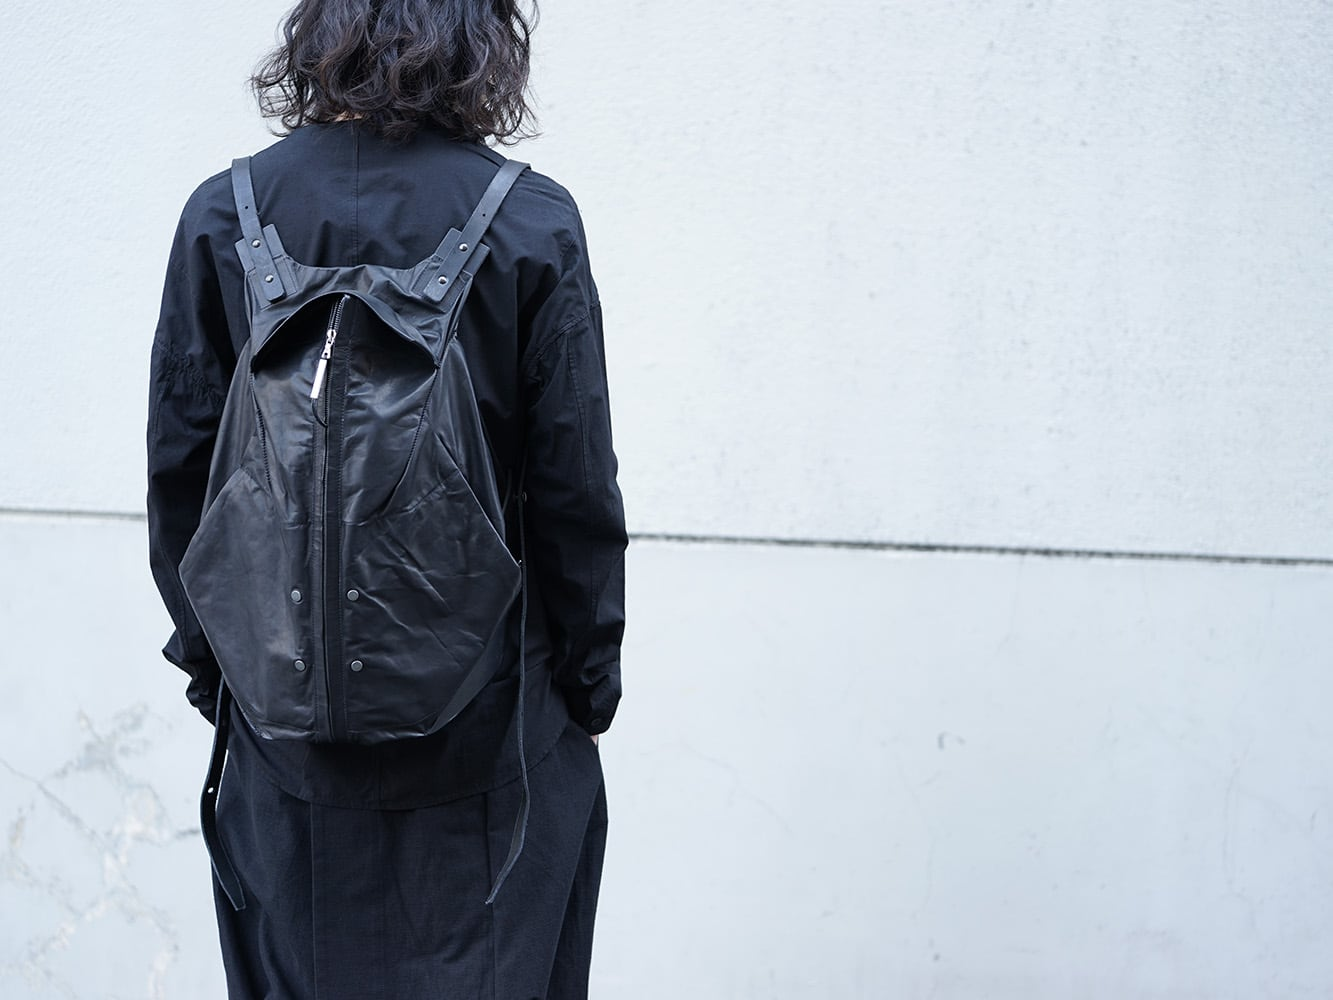 Recommended Bag Part 1 - ISAAC SELLAM